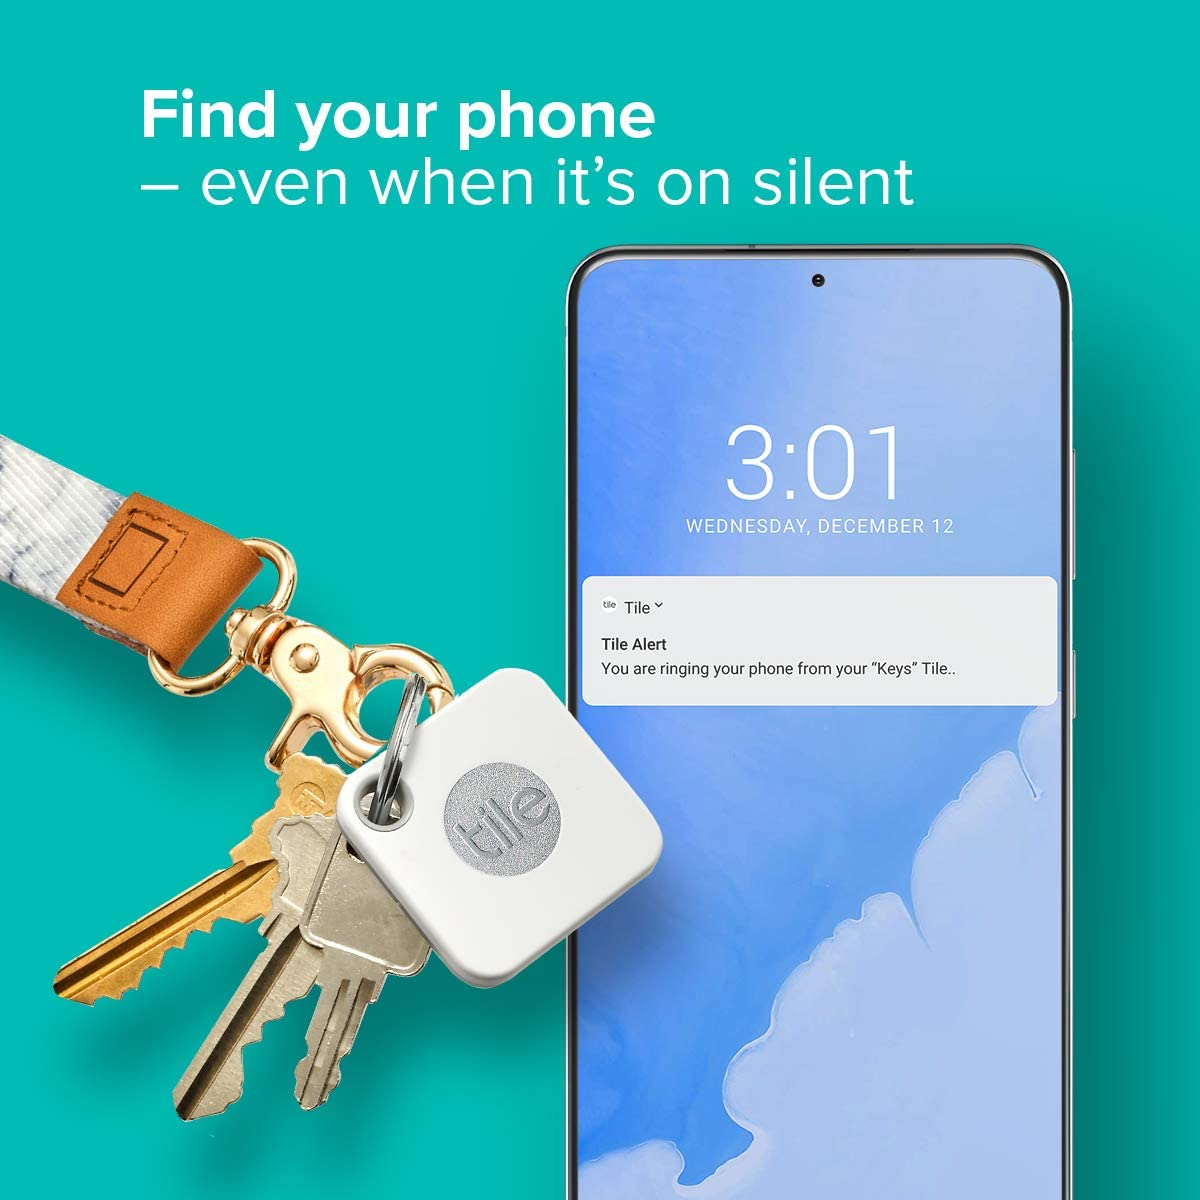 tile mate 2020 2 pack bluetooth tracker keys finder and item locator for keys bags and more water resistant with 1 year replaceable battery